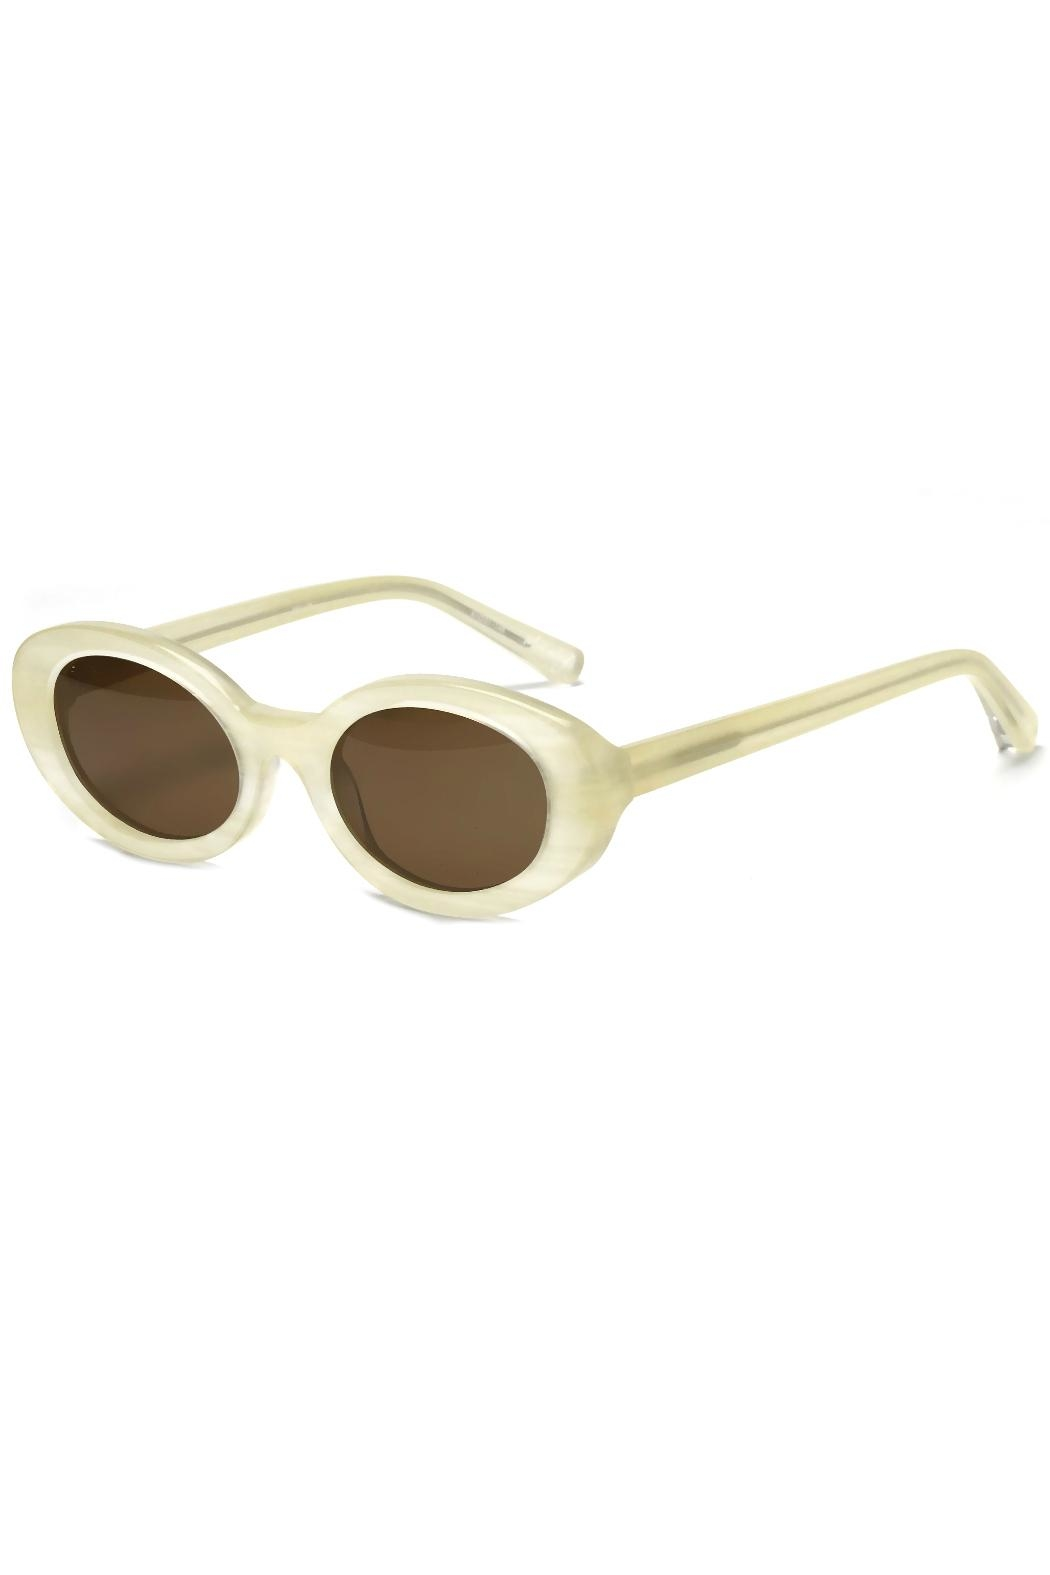 Elizabeth and james Sunglasses McKinley White - Front Full Image